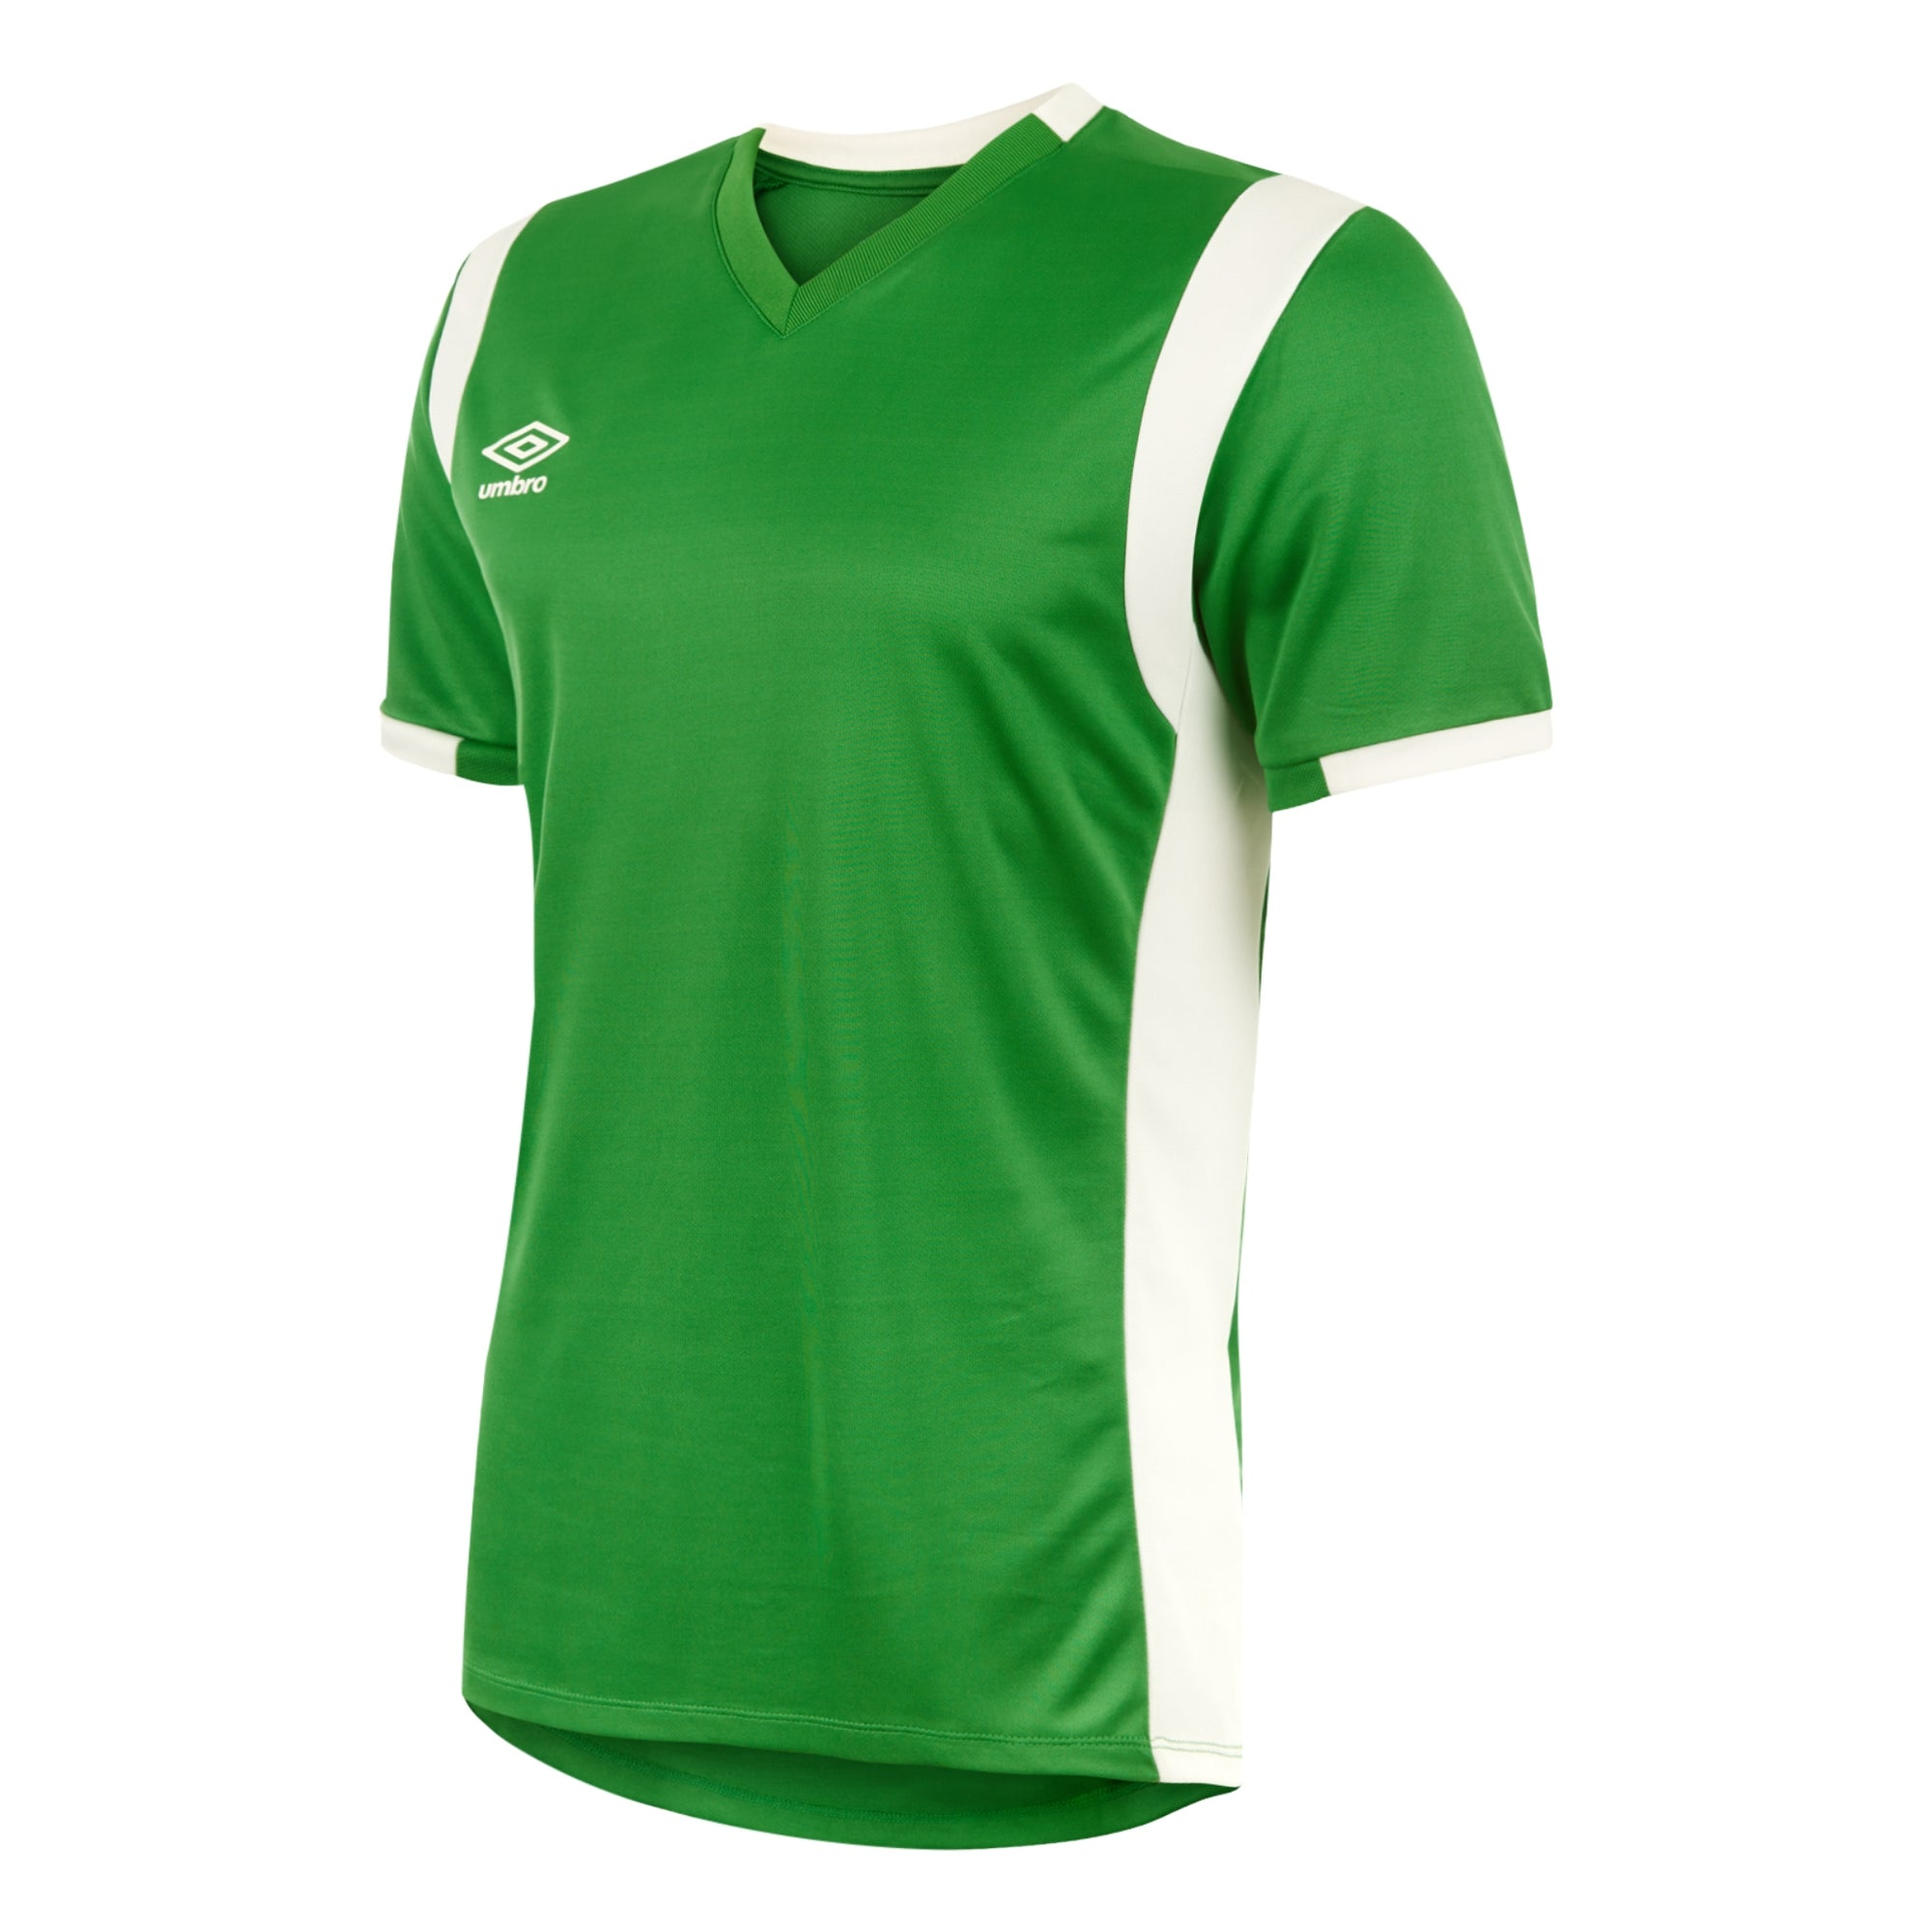 Umbro Spartan Jersey SS - Emerald/White